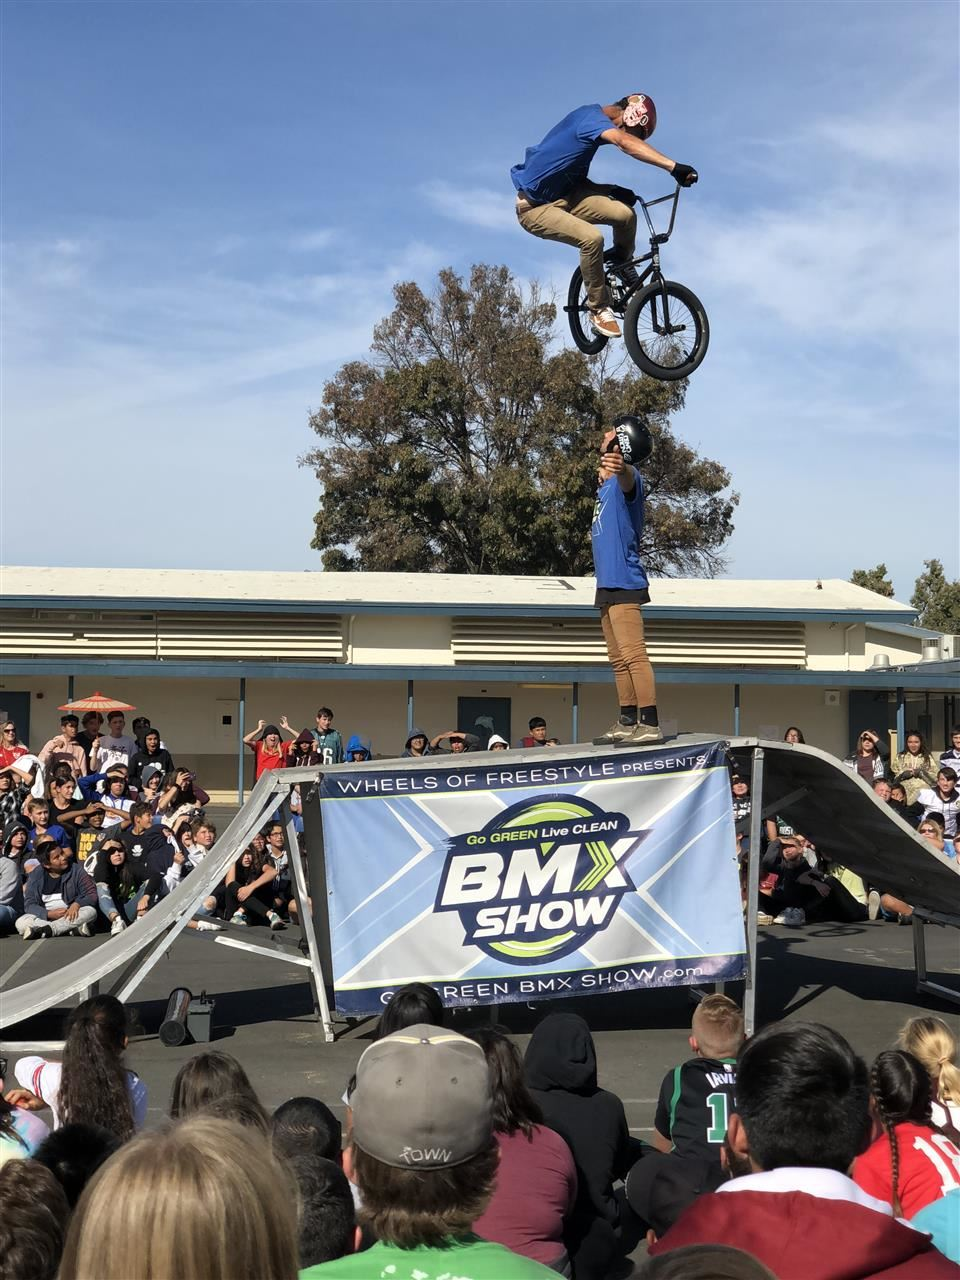 BMX Assembly delivers a motivational presentation